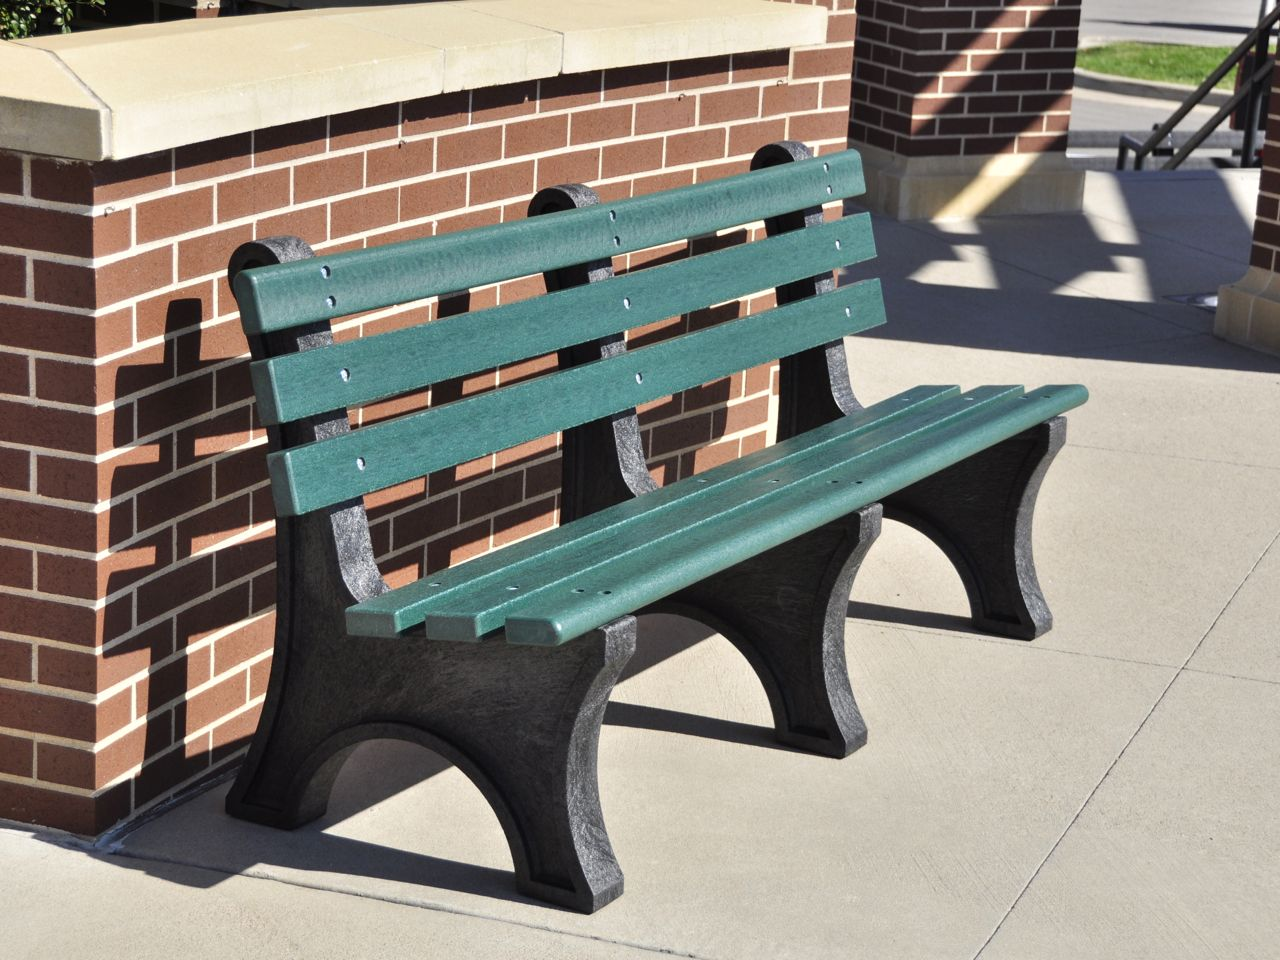 Central park bench by jayhawk plastics benches for park for Outdoor plastic bench seats